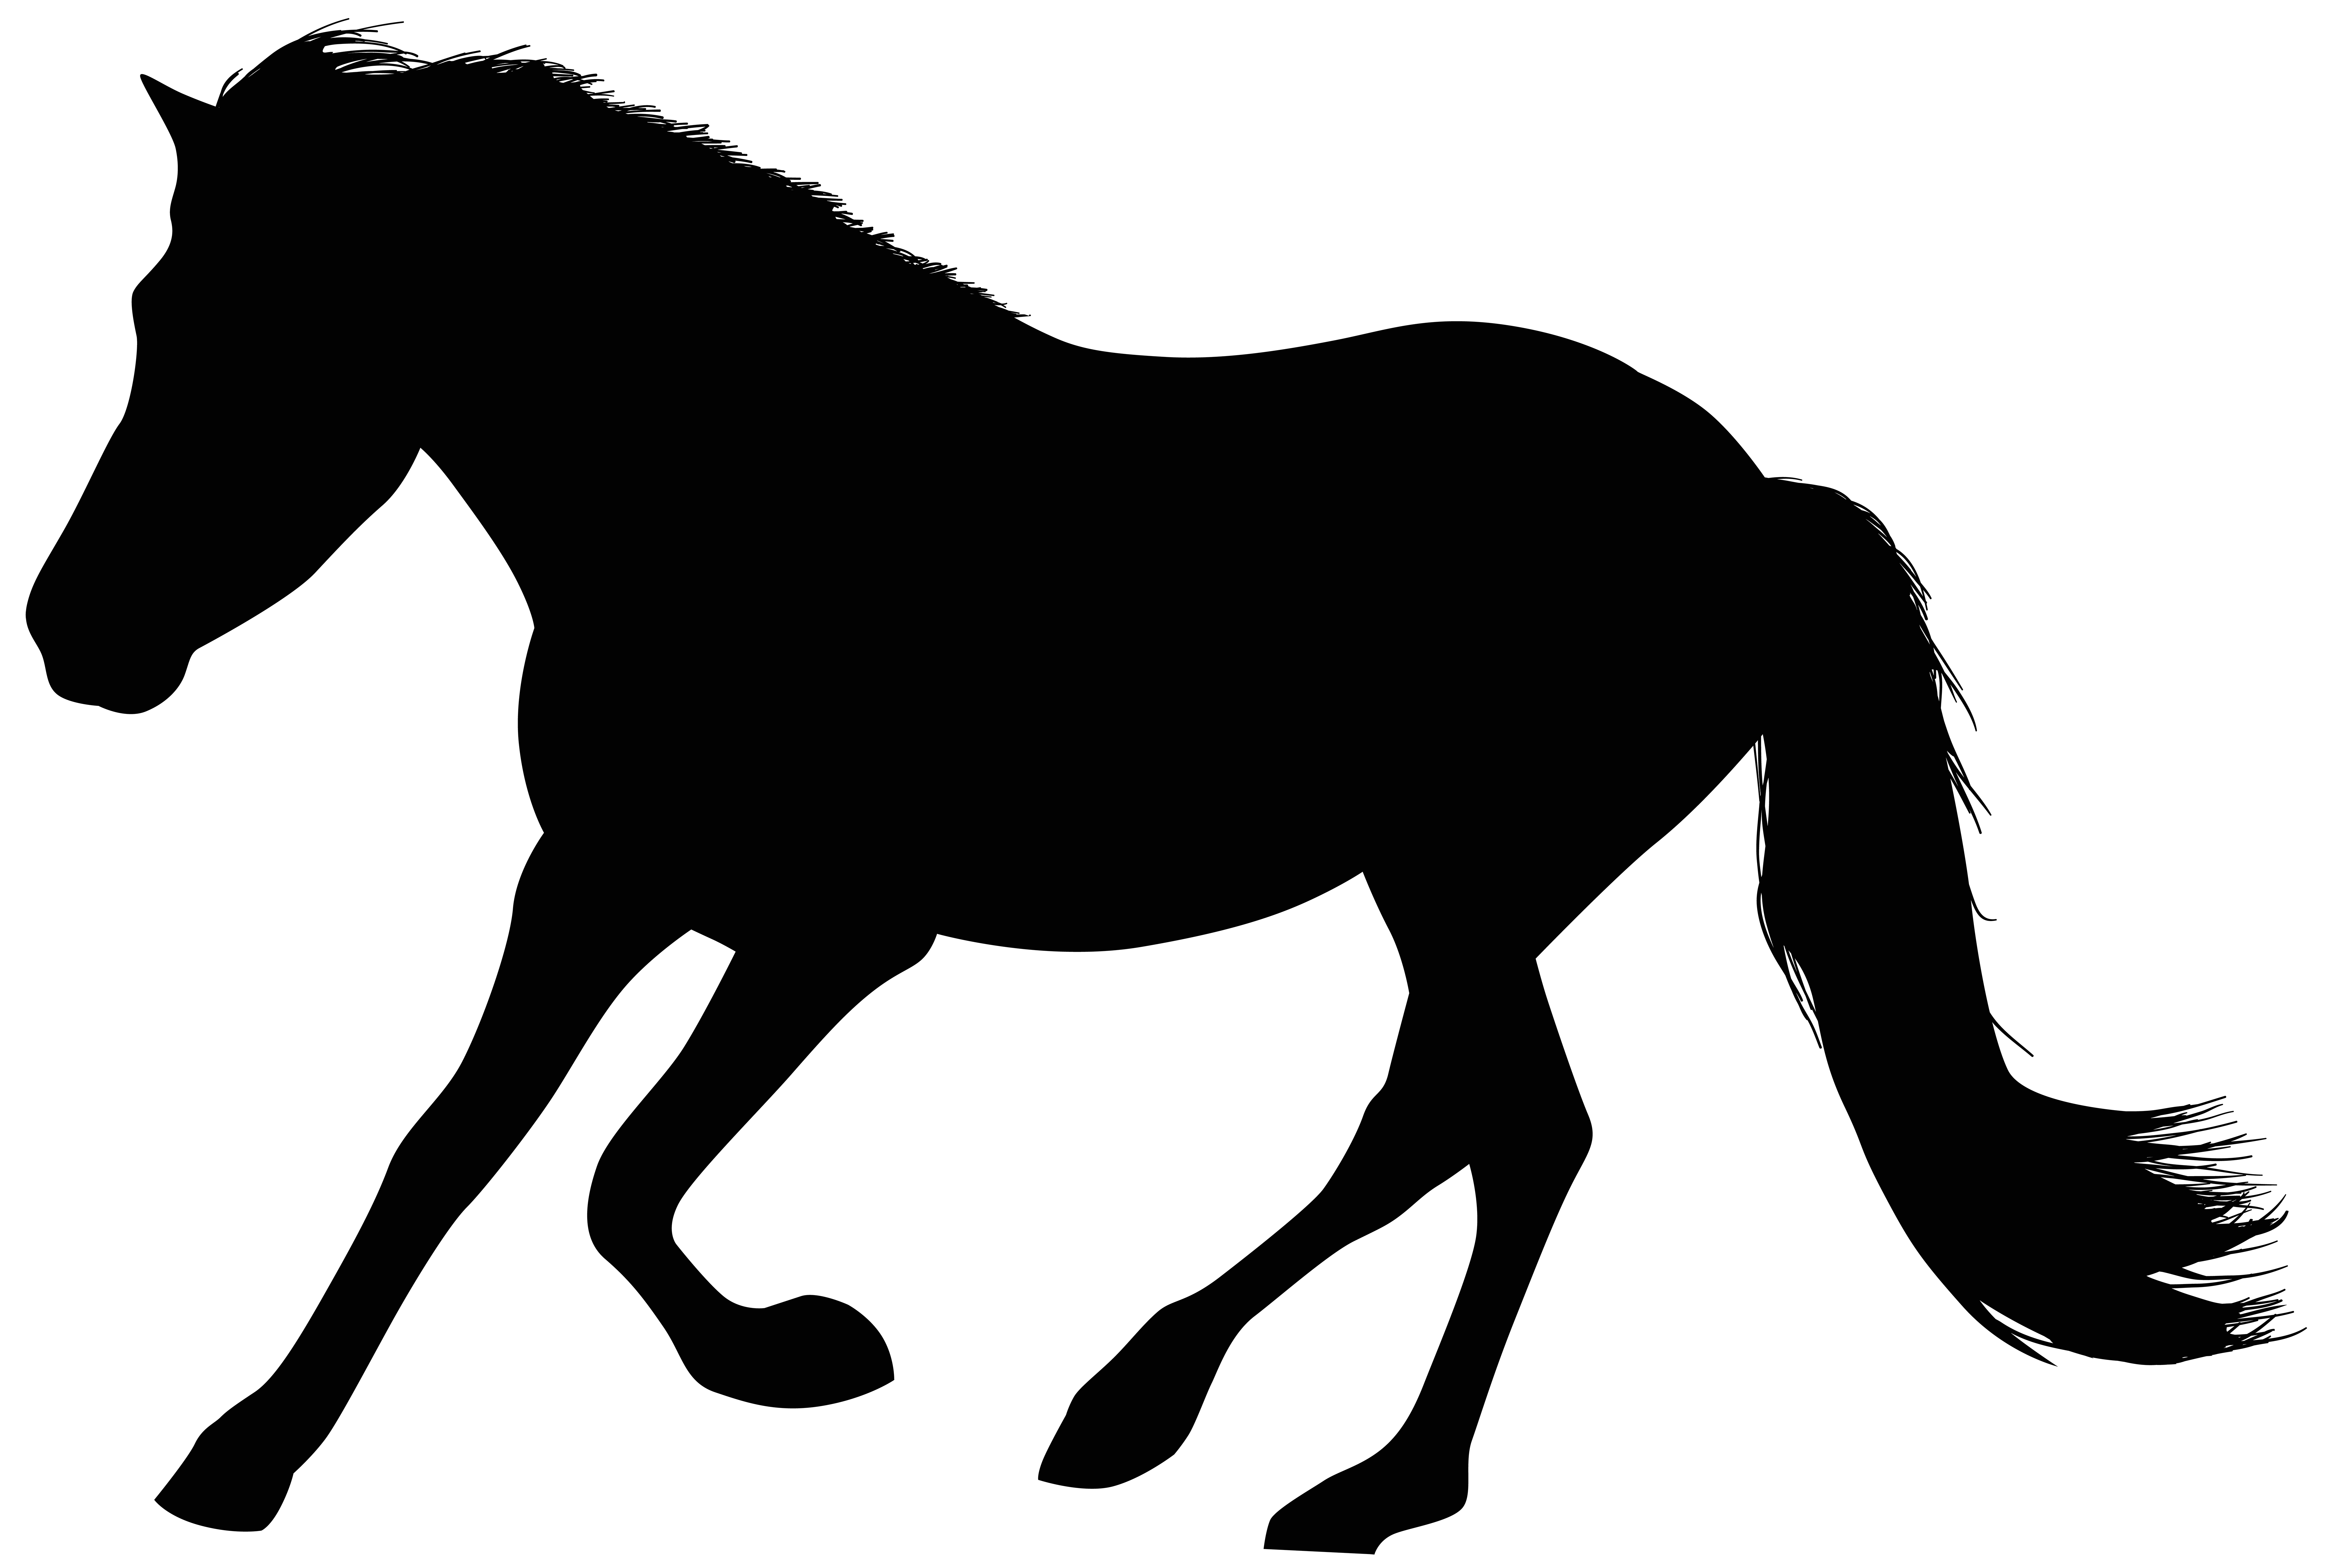 Running Horse Silhouette Clip Art At Getdrawings Free For